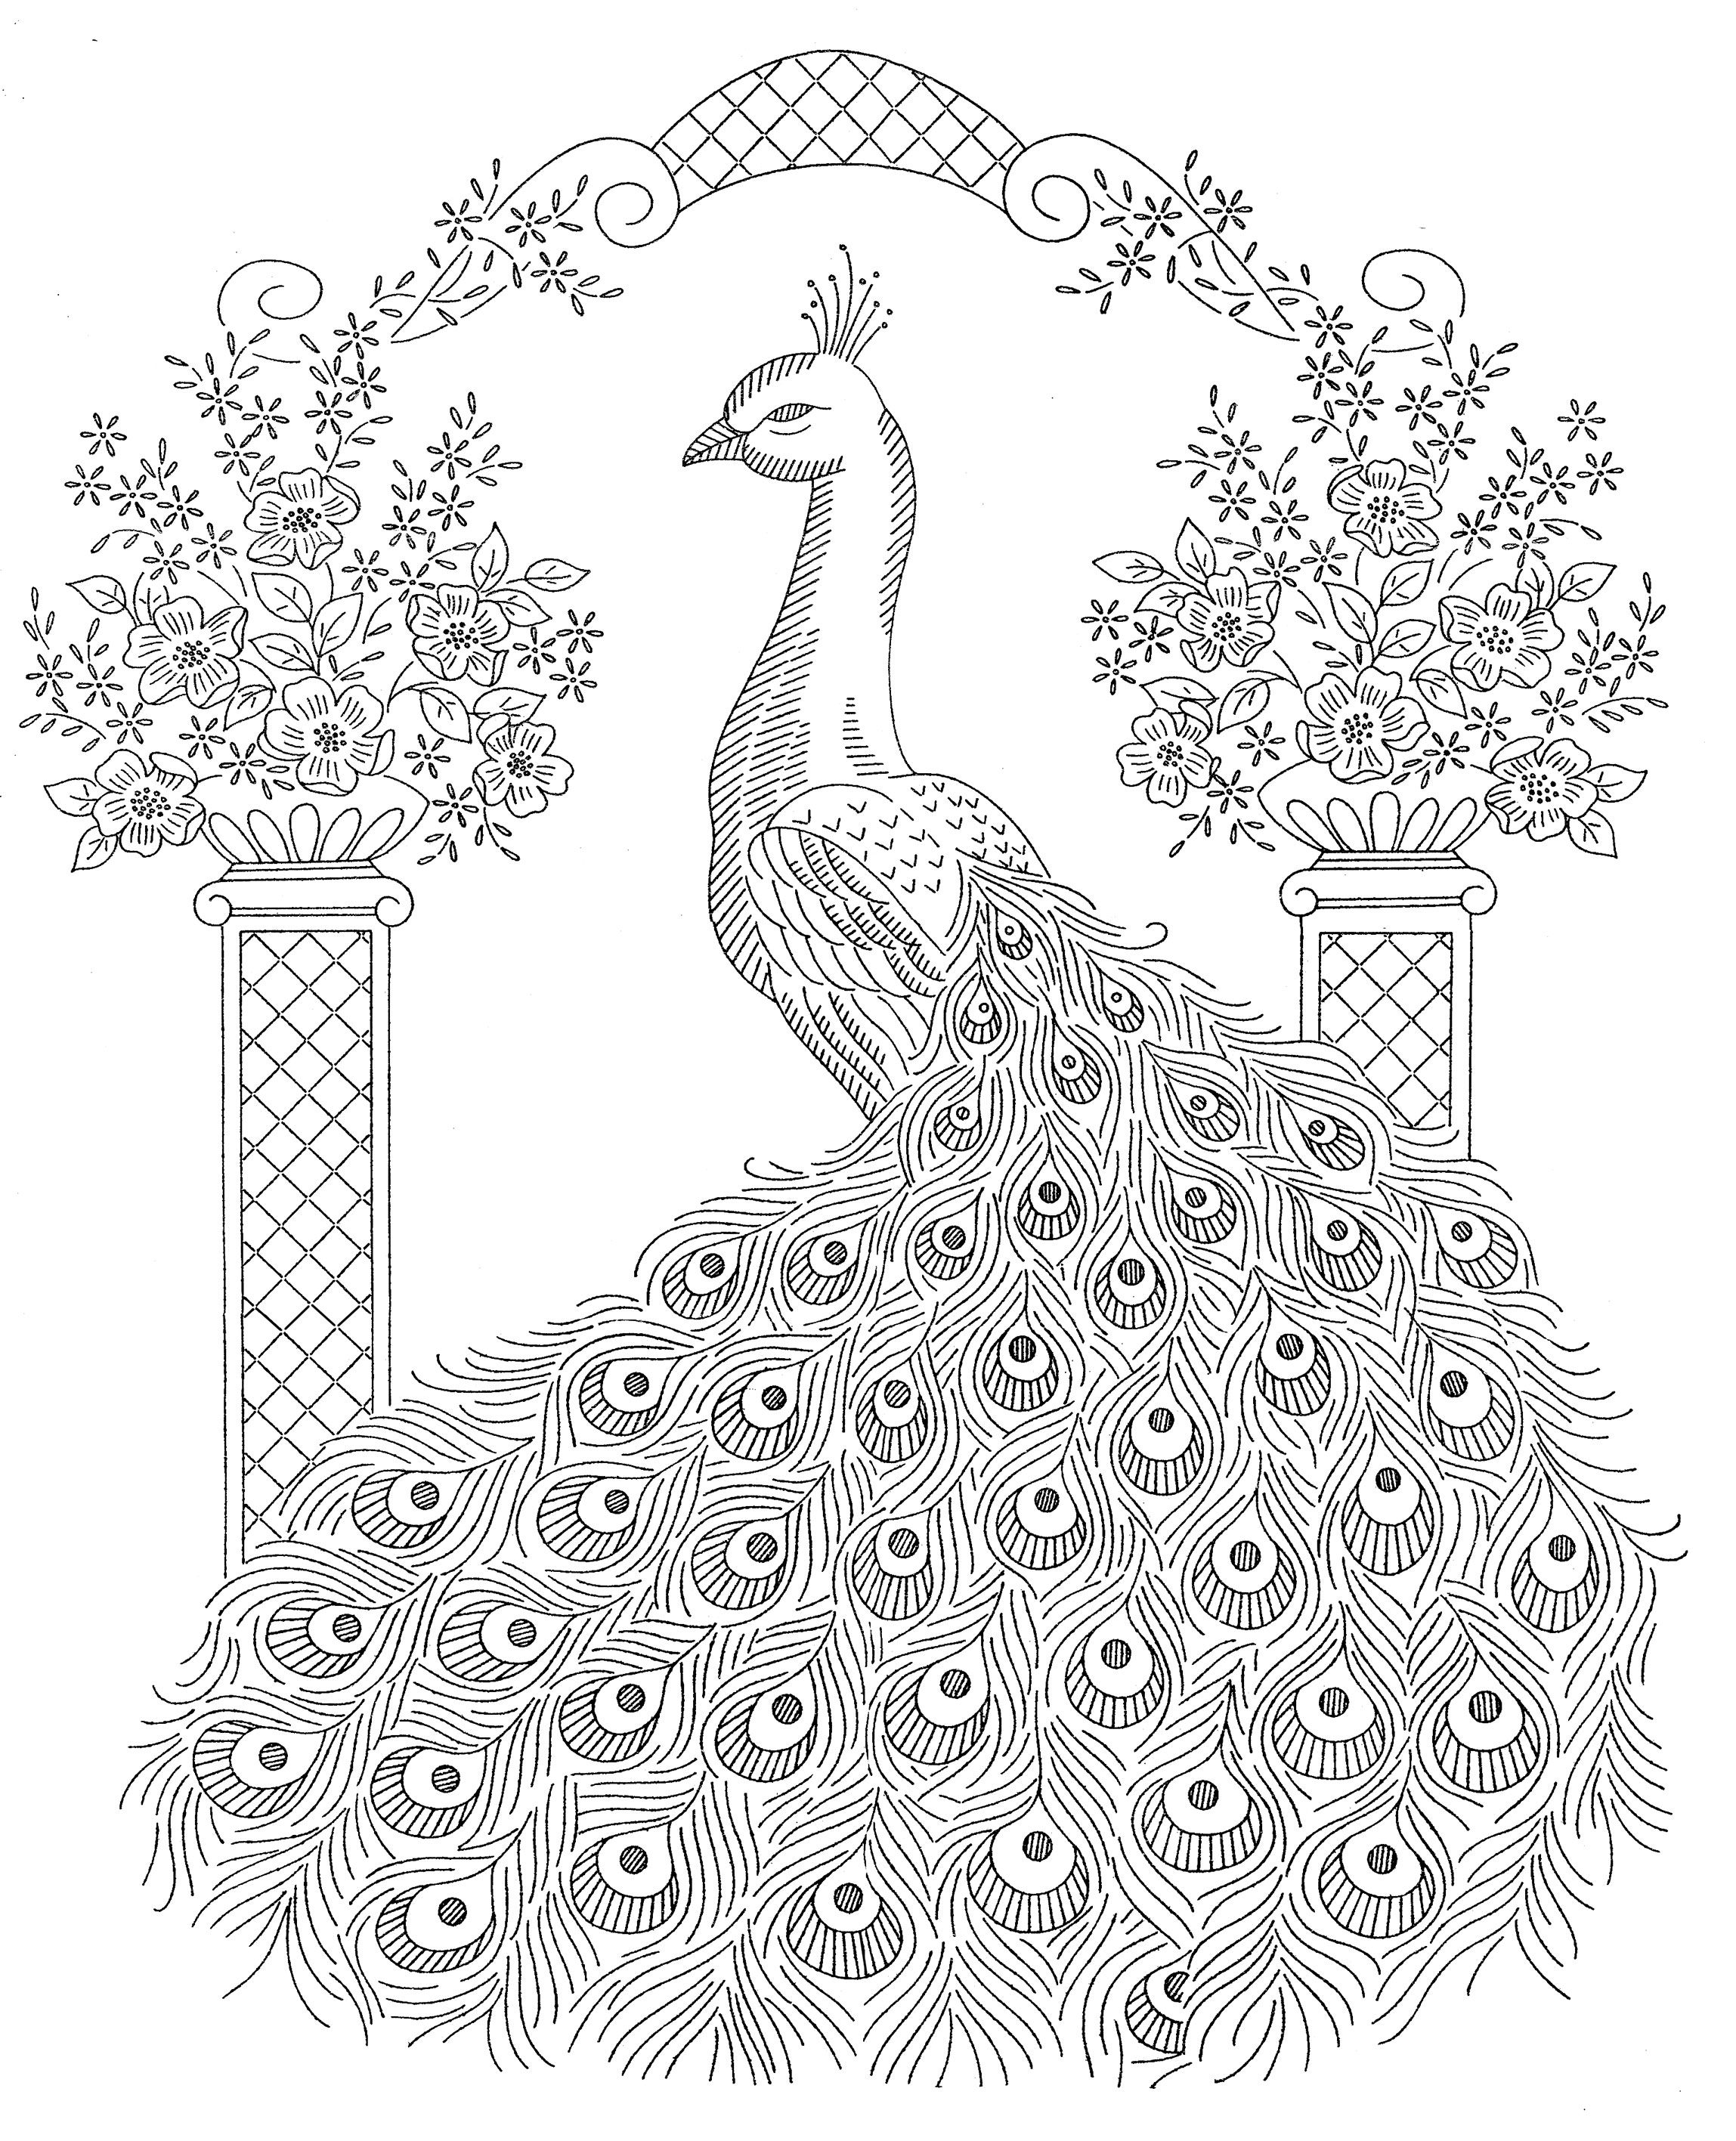 line drawing of peacock peacock drawing outline at paintingvalleycom explore line drawing of peacock